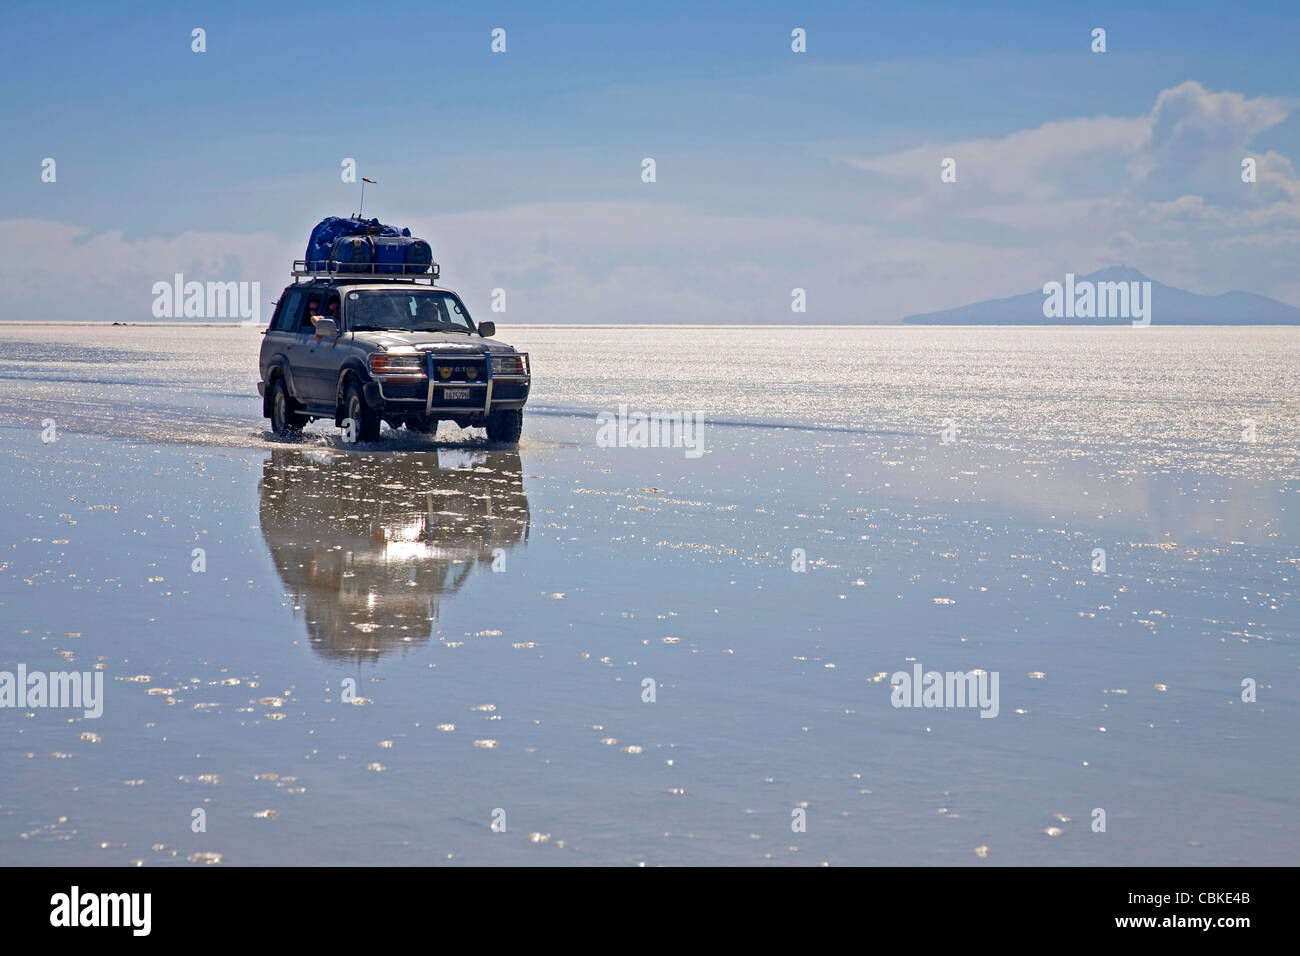 Four-wheel drive vehicle driving on the salt flat Salar de Uyuni, Altiplano in Bolivia - Stock Image